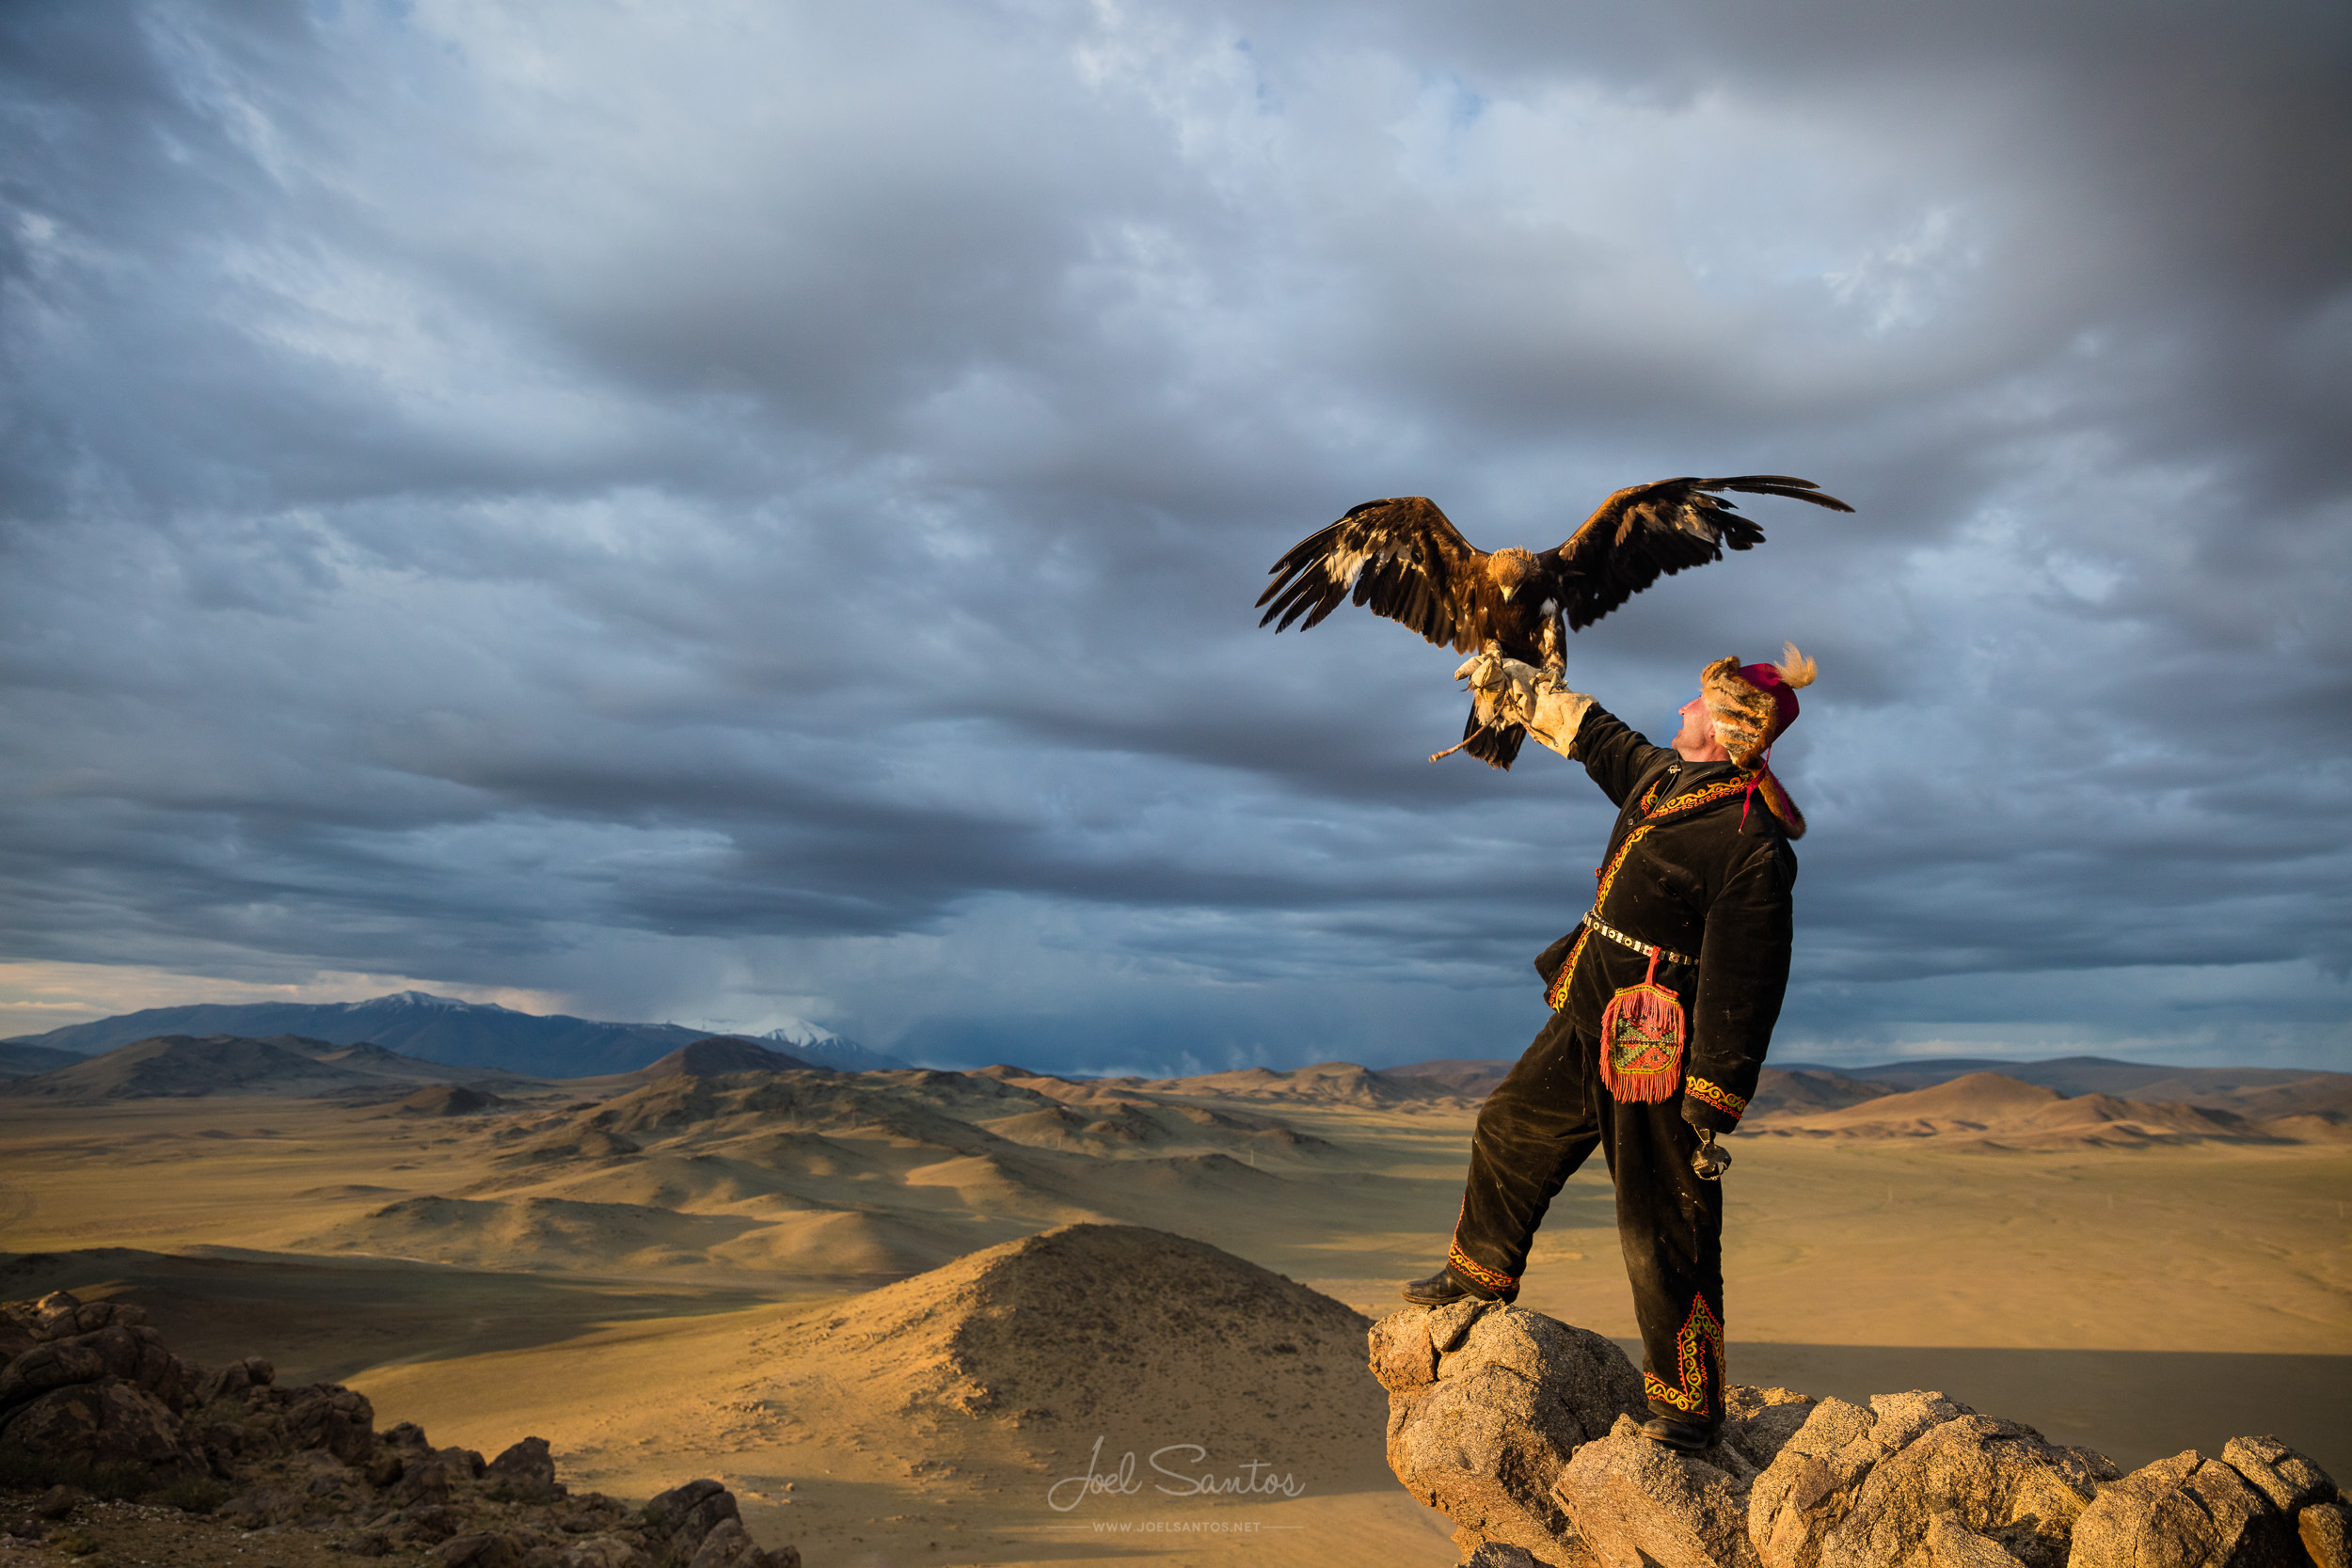 Agalai Nurgaiv, Aishol Pan father, Eagle Hunter, Altai, Western